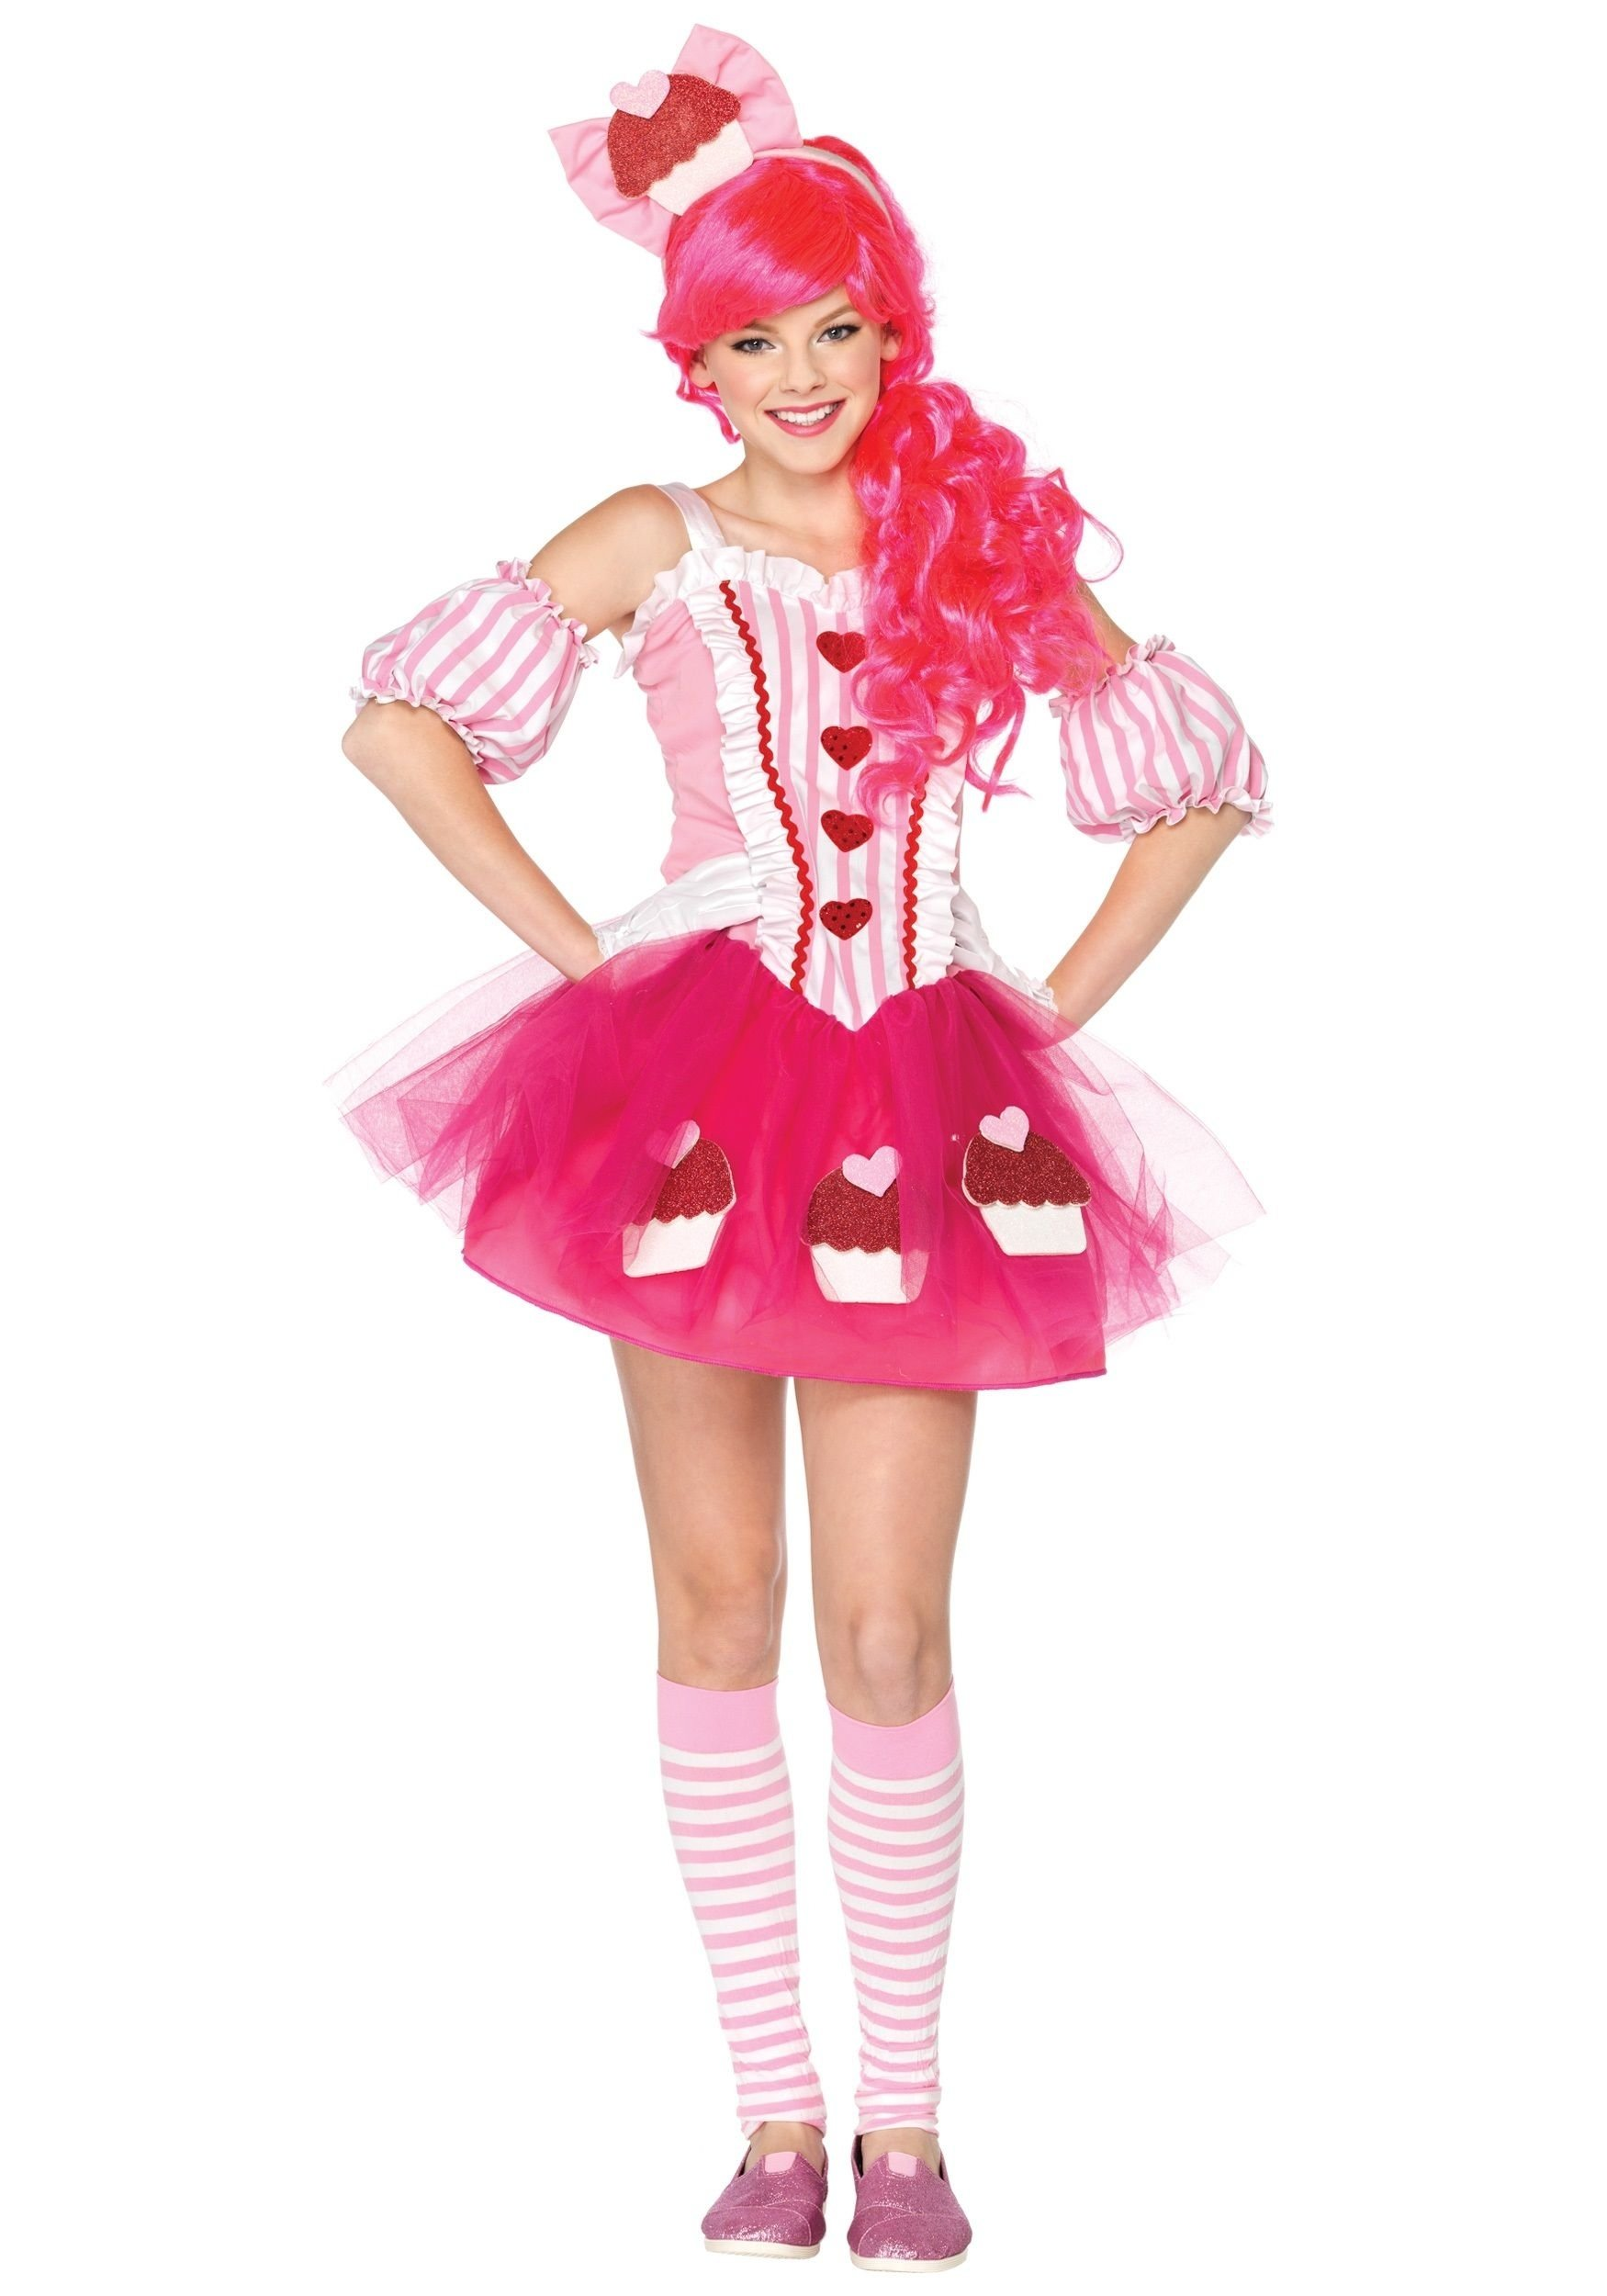 10 Wonderful Cute Teenage Girl Costume Ideas cute halloween costumes for teens cute teen girl halloween costume